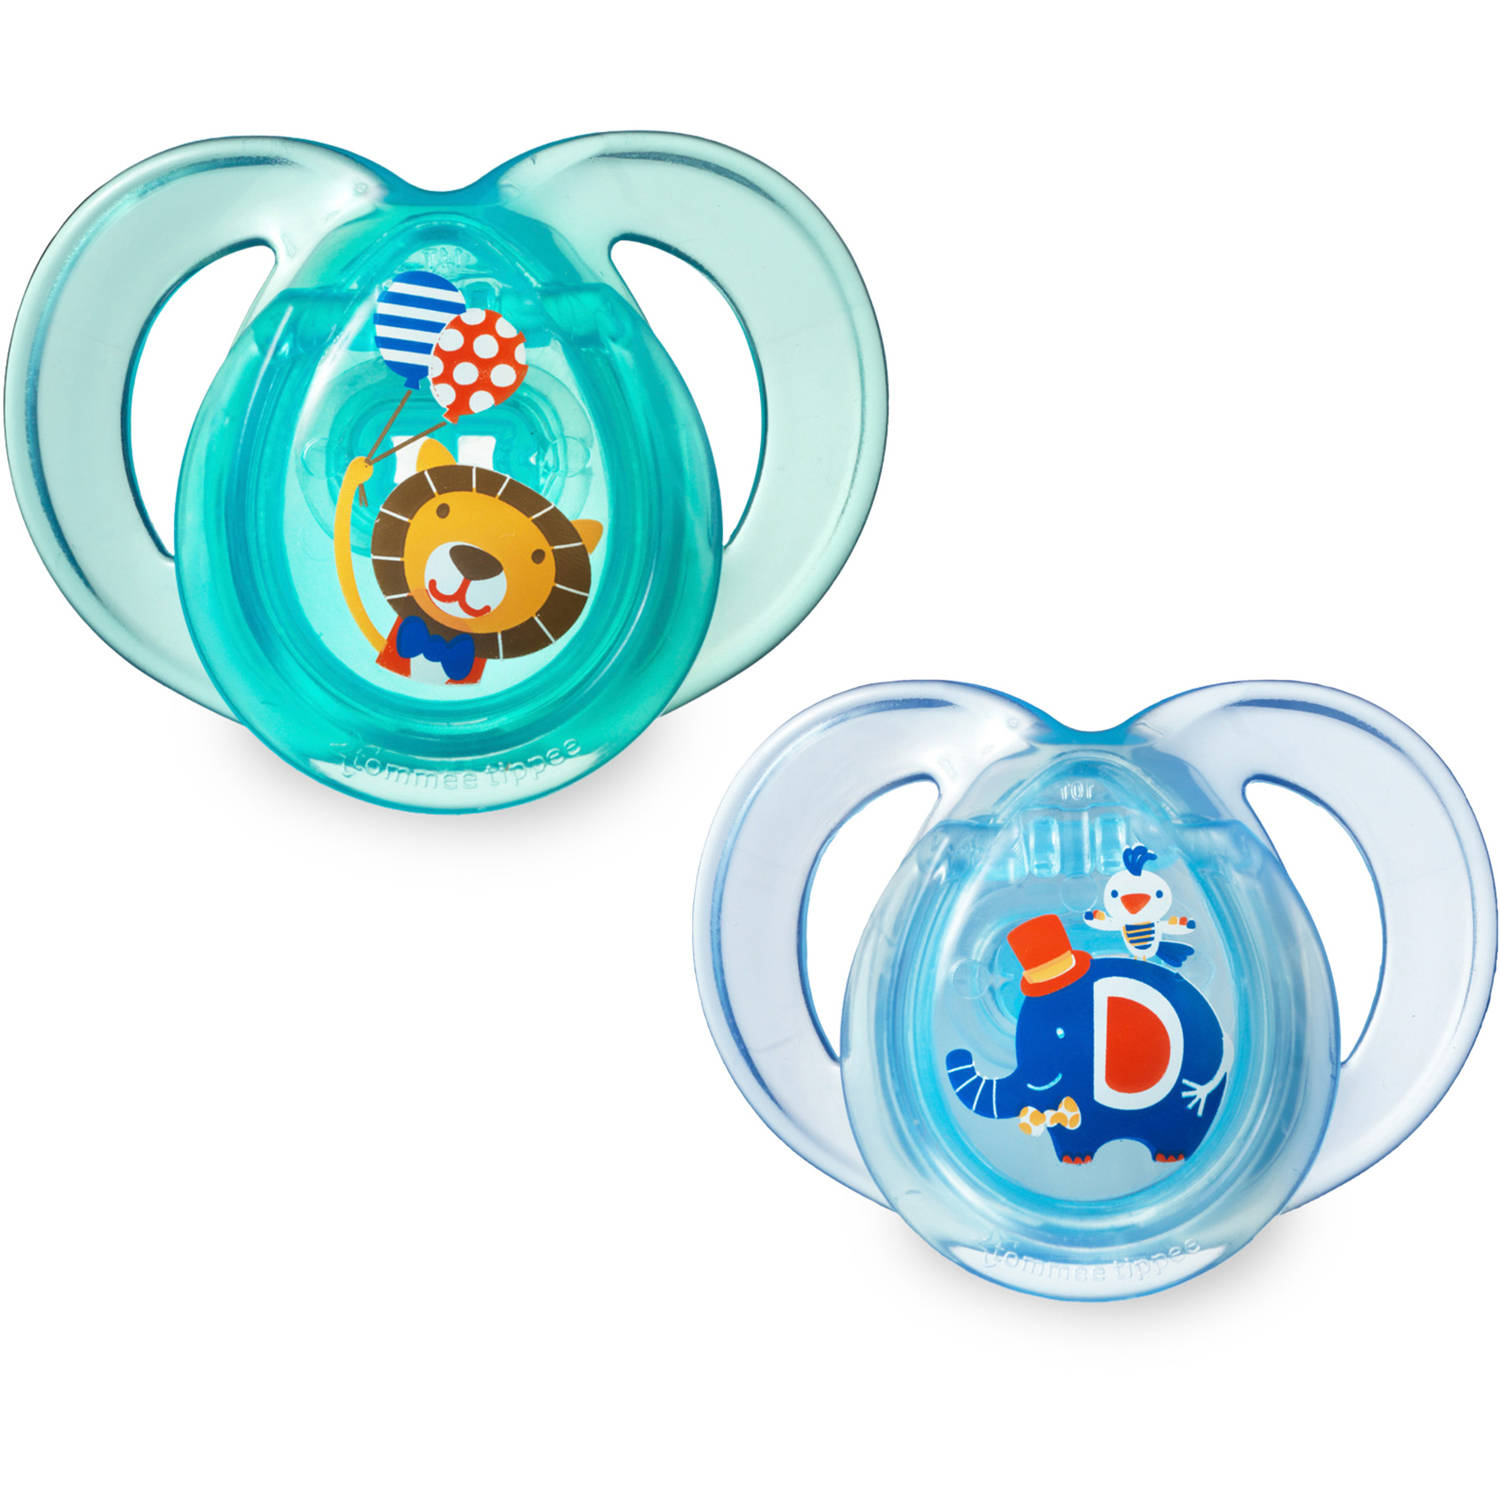 Tommee Tippee Closer to Nature 6-18 Month Everyday Pacifiers, 2pk, Boy by Tommee Tippee